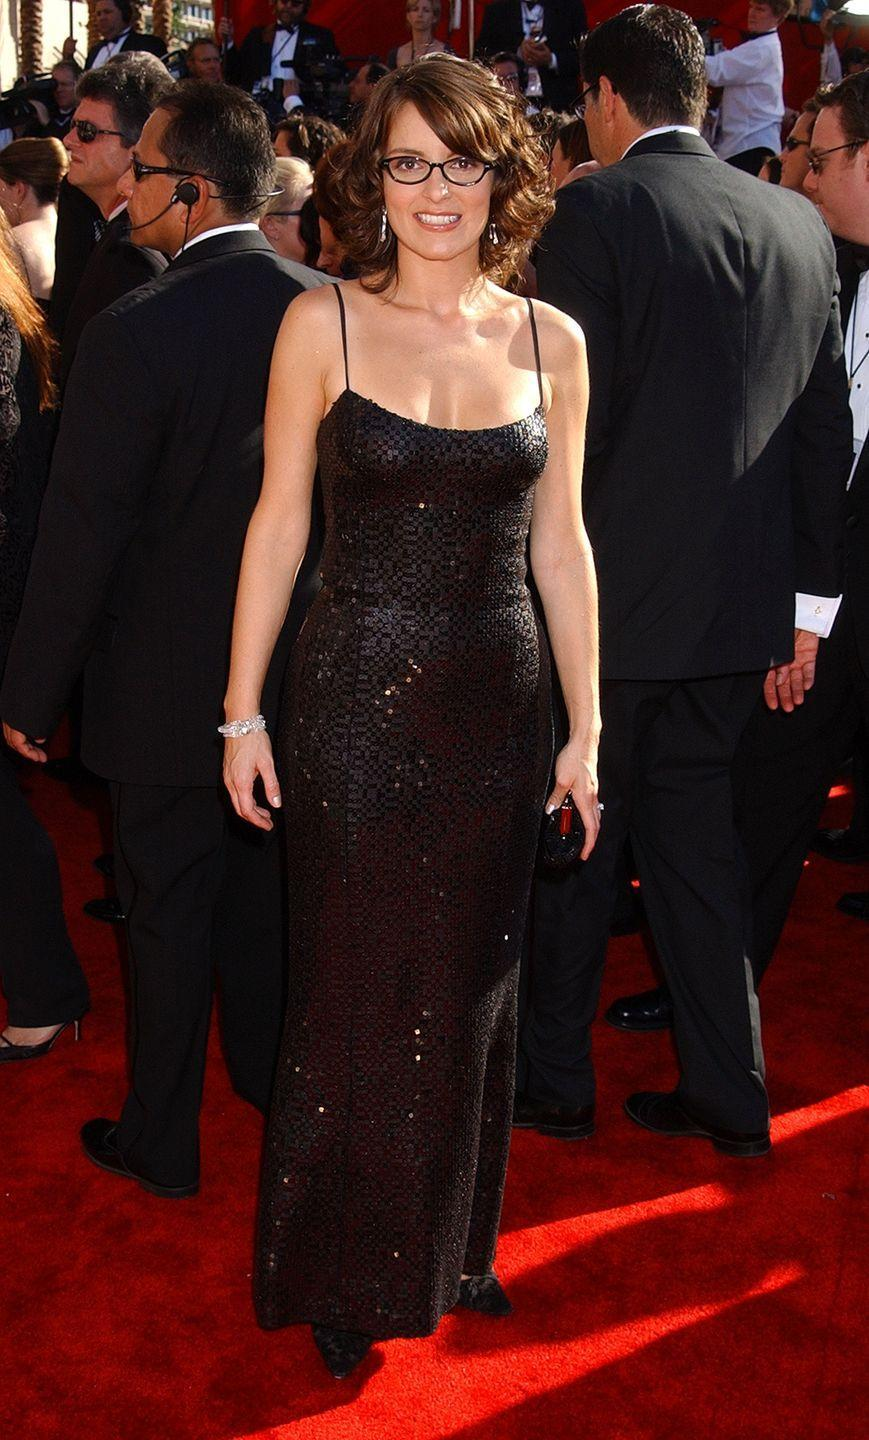 <p>Fey wore a sexy LBD and her signature glasses to the Emmy Awards in 2002. </p>